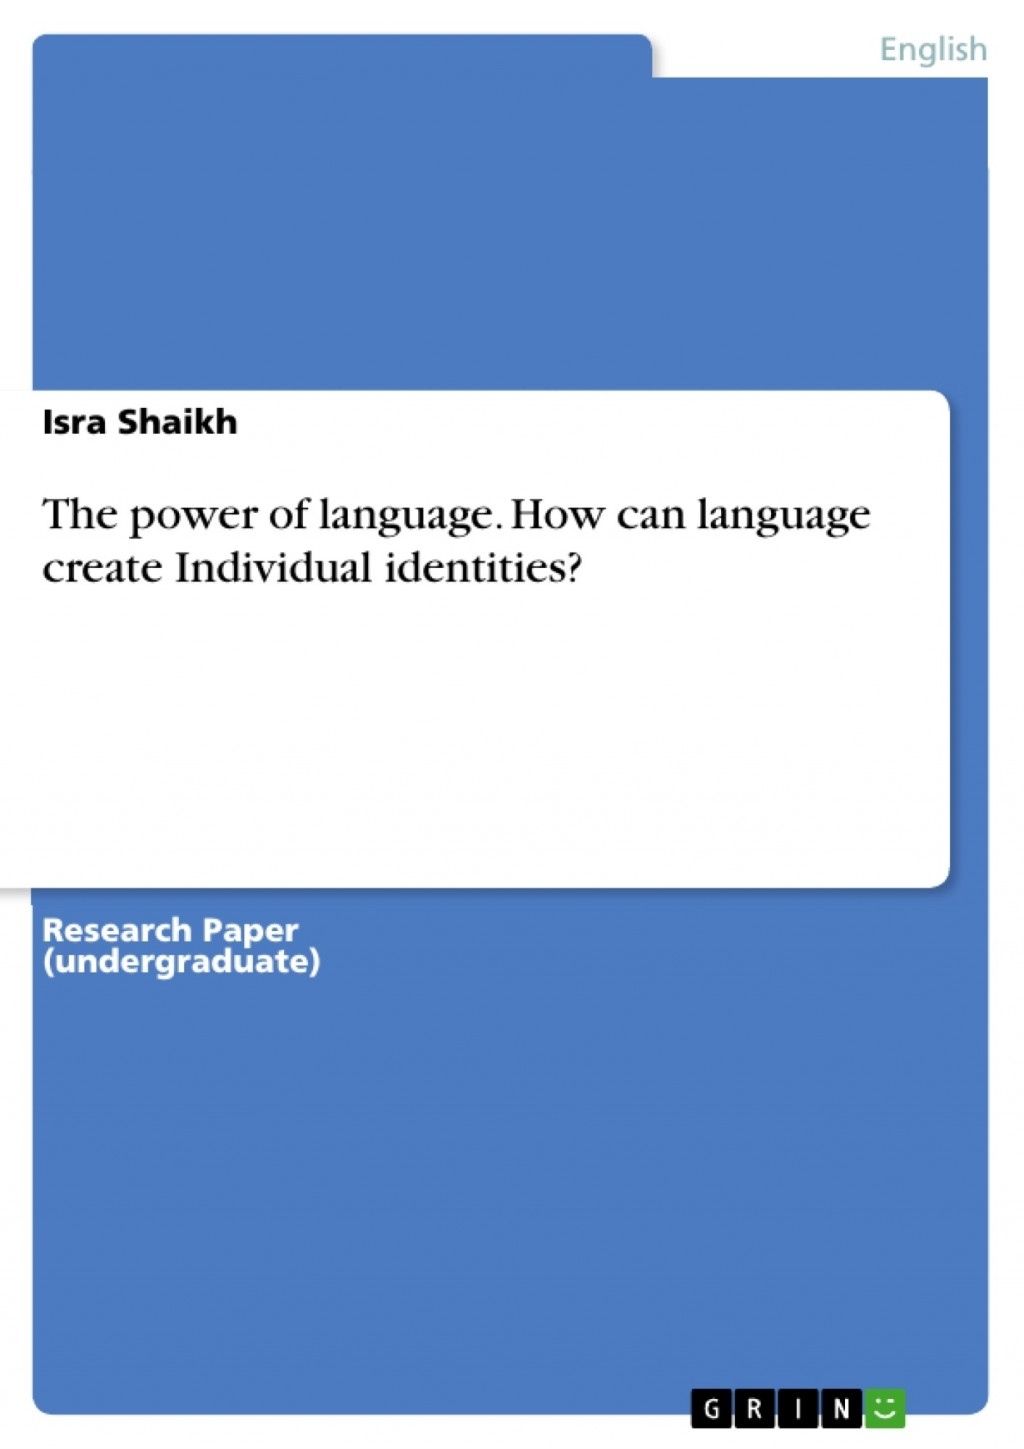 009 465275 0 Research Paper How To Publish As An Marvelous A Undergraduate In India Large